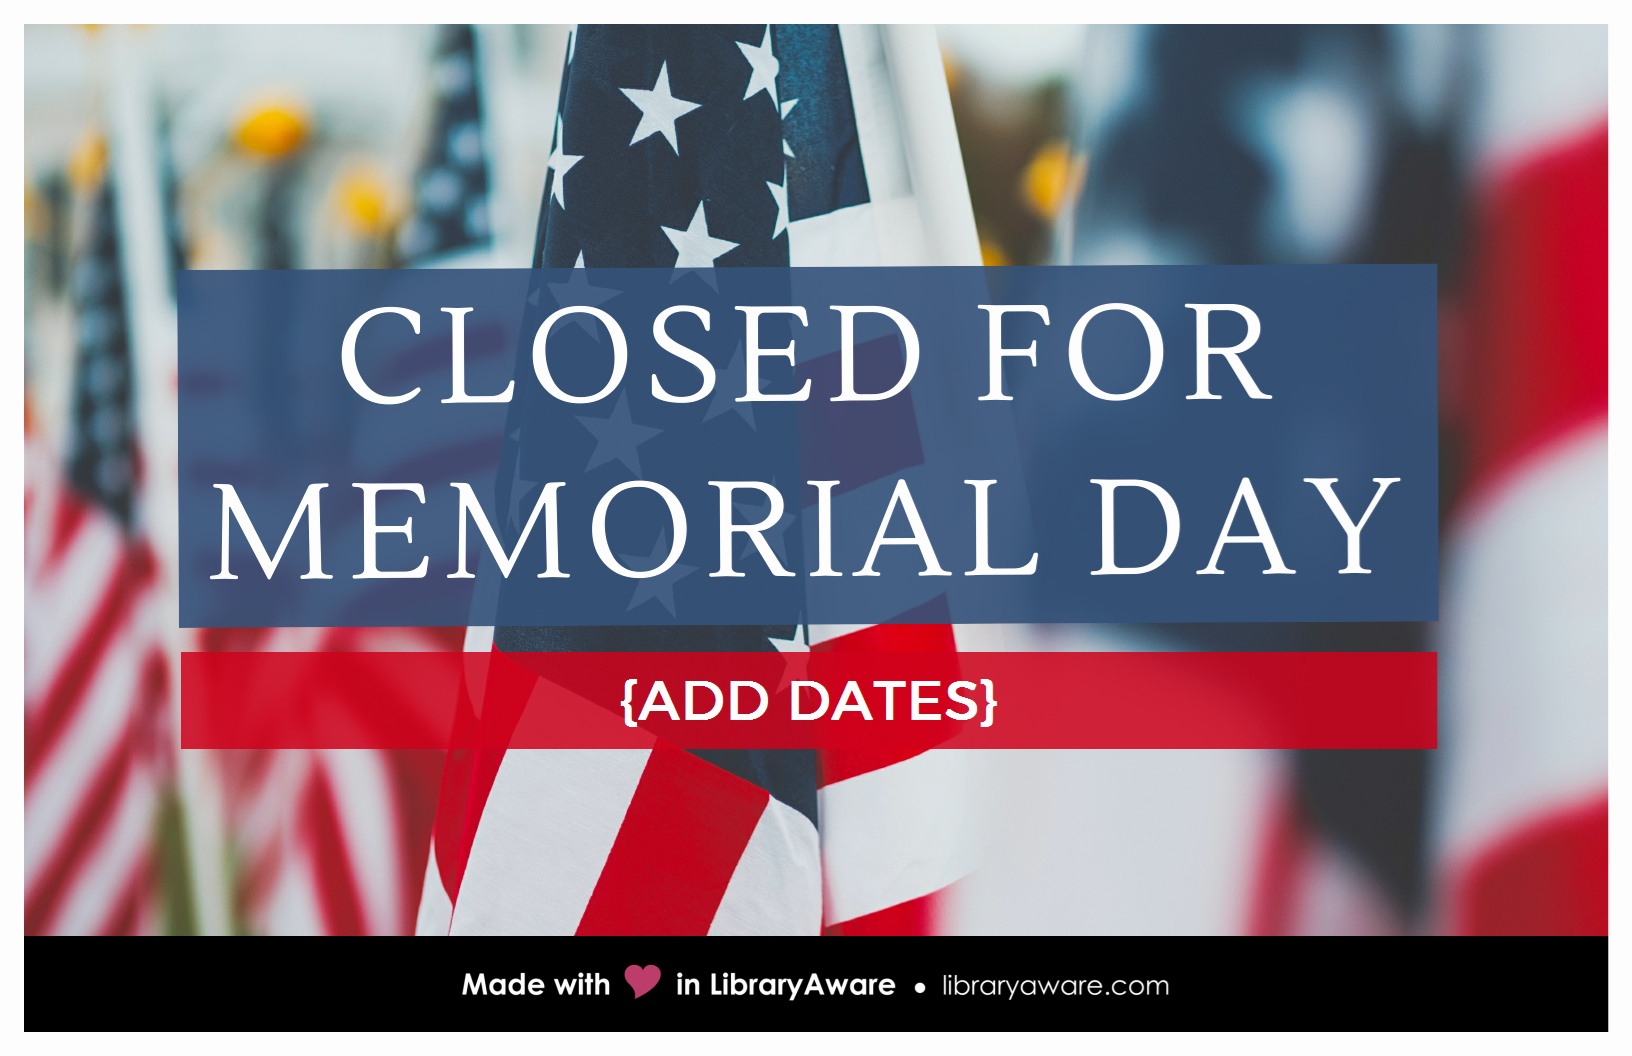 Memorial Day Closed Sign Template Beautiful Need A Quick Sign Libraryaware Has You Covered with This